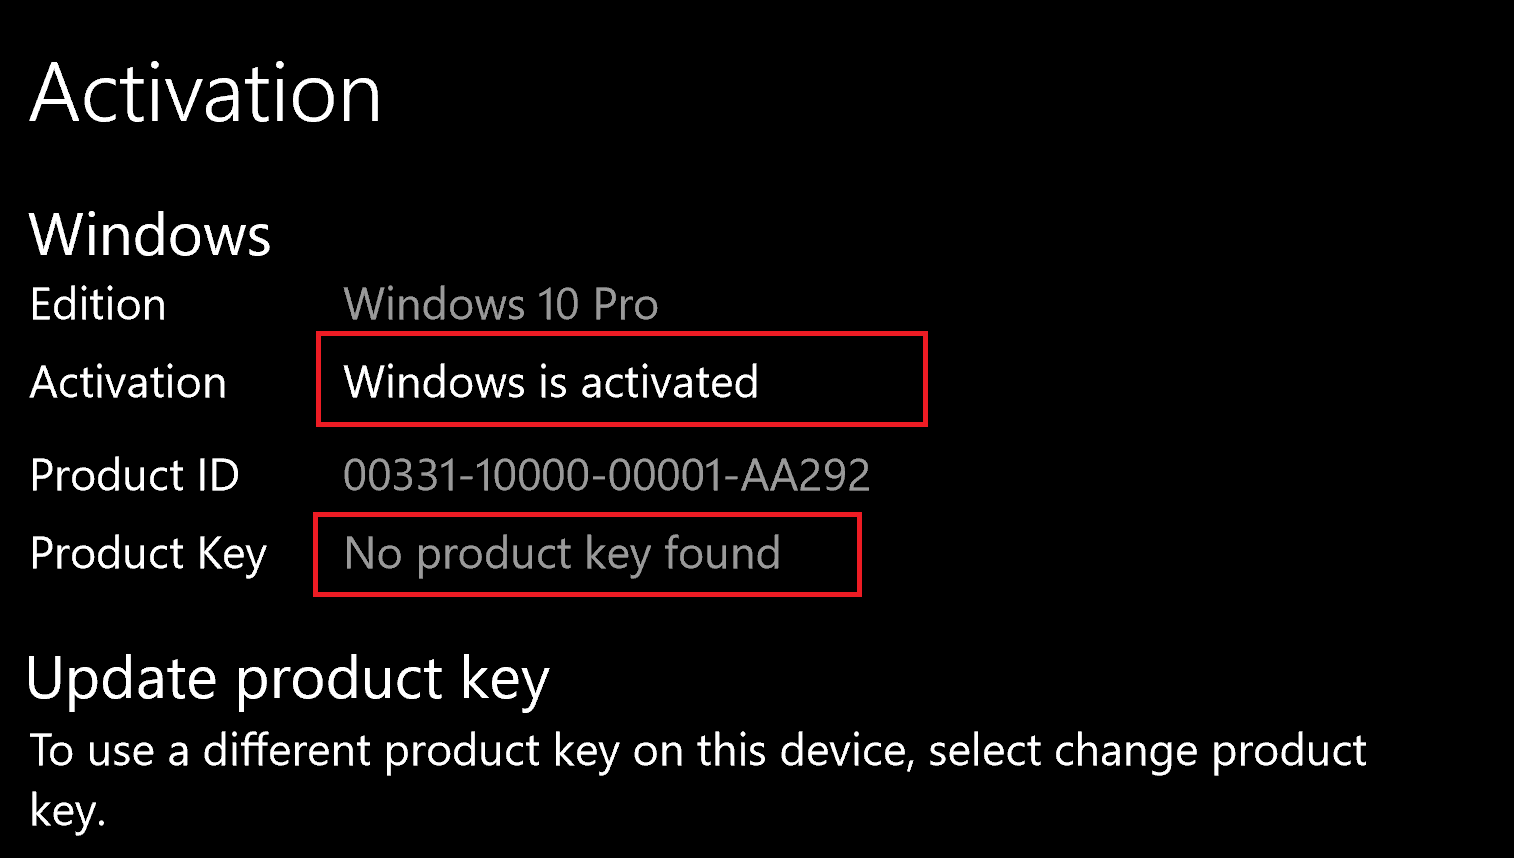 windows 10 active but no product key found 37196061-c1bf-4521-9645-7c1d566ca6bf?upload=true.png